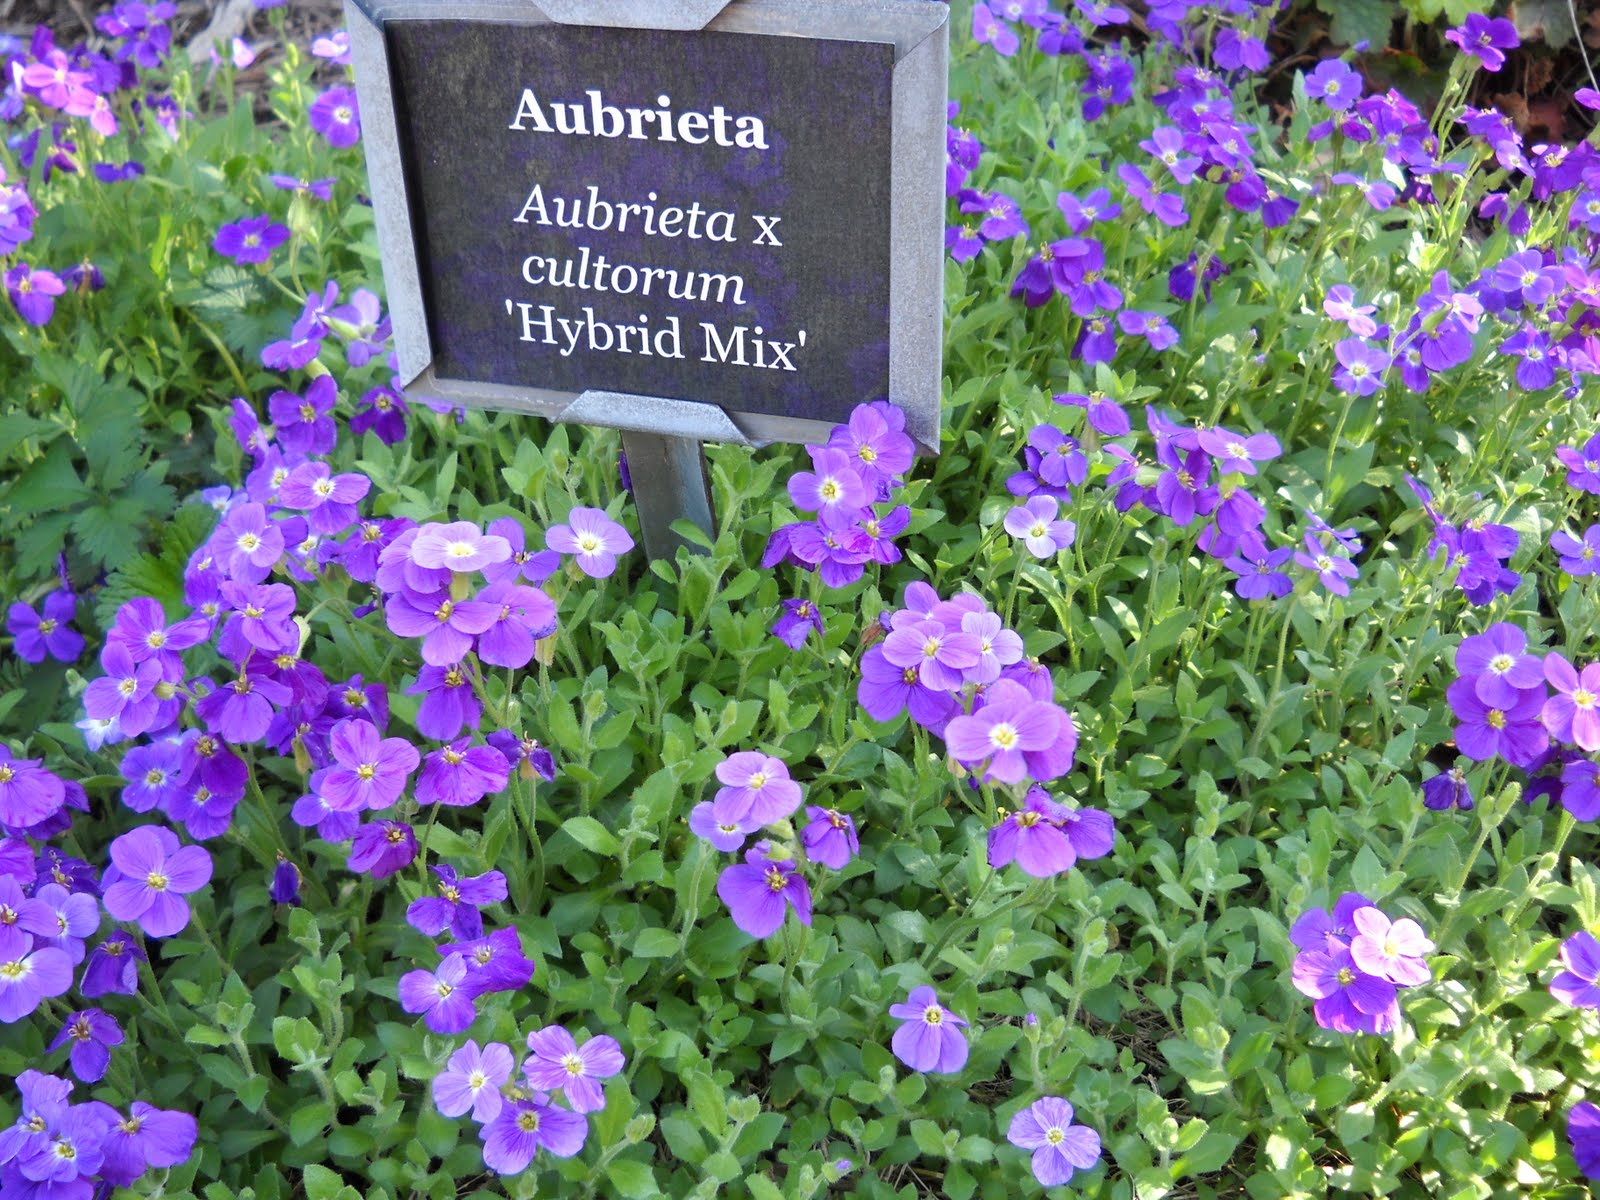 horticulture gardens today aubrieta. Black Bedroom Furniture Sets. Home Design Ideas